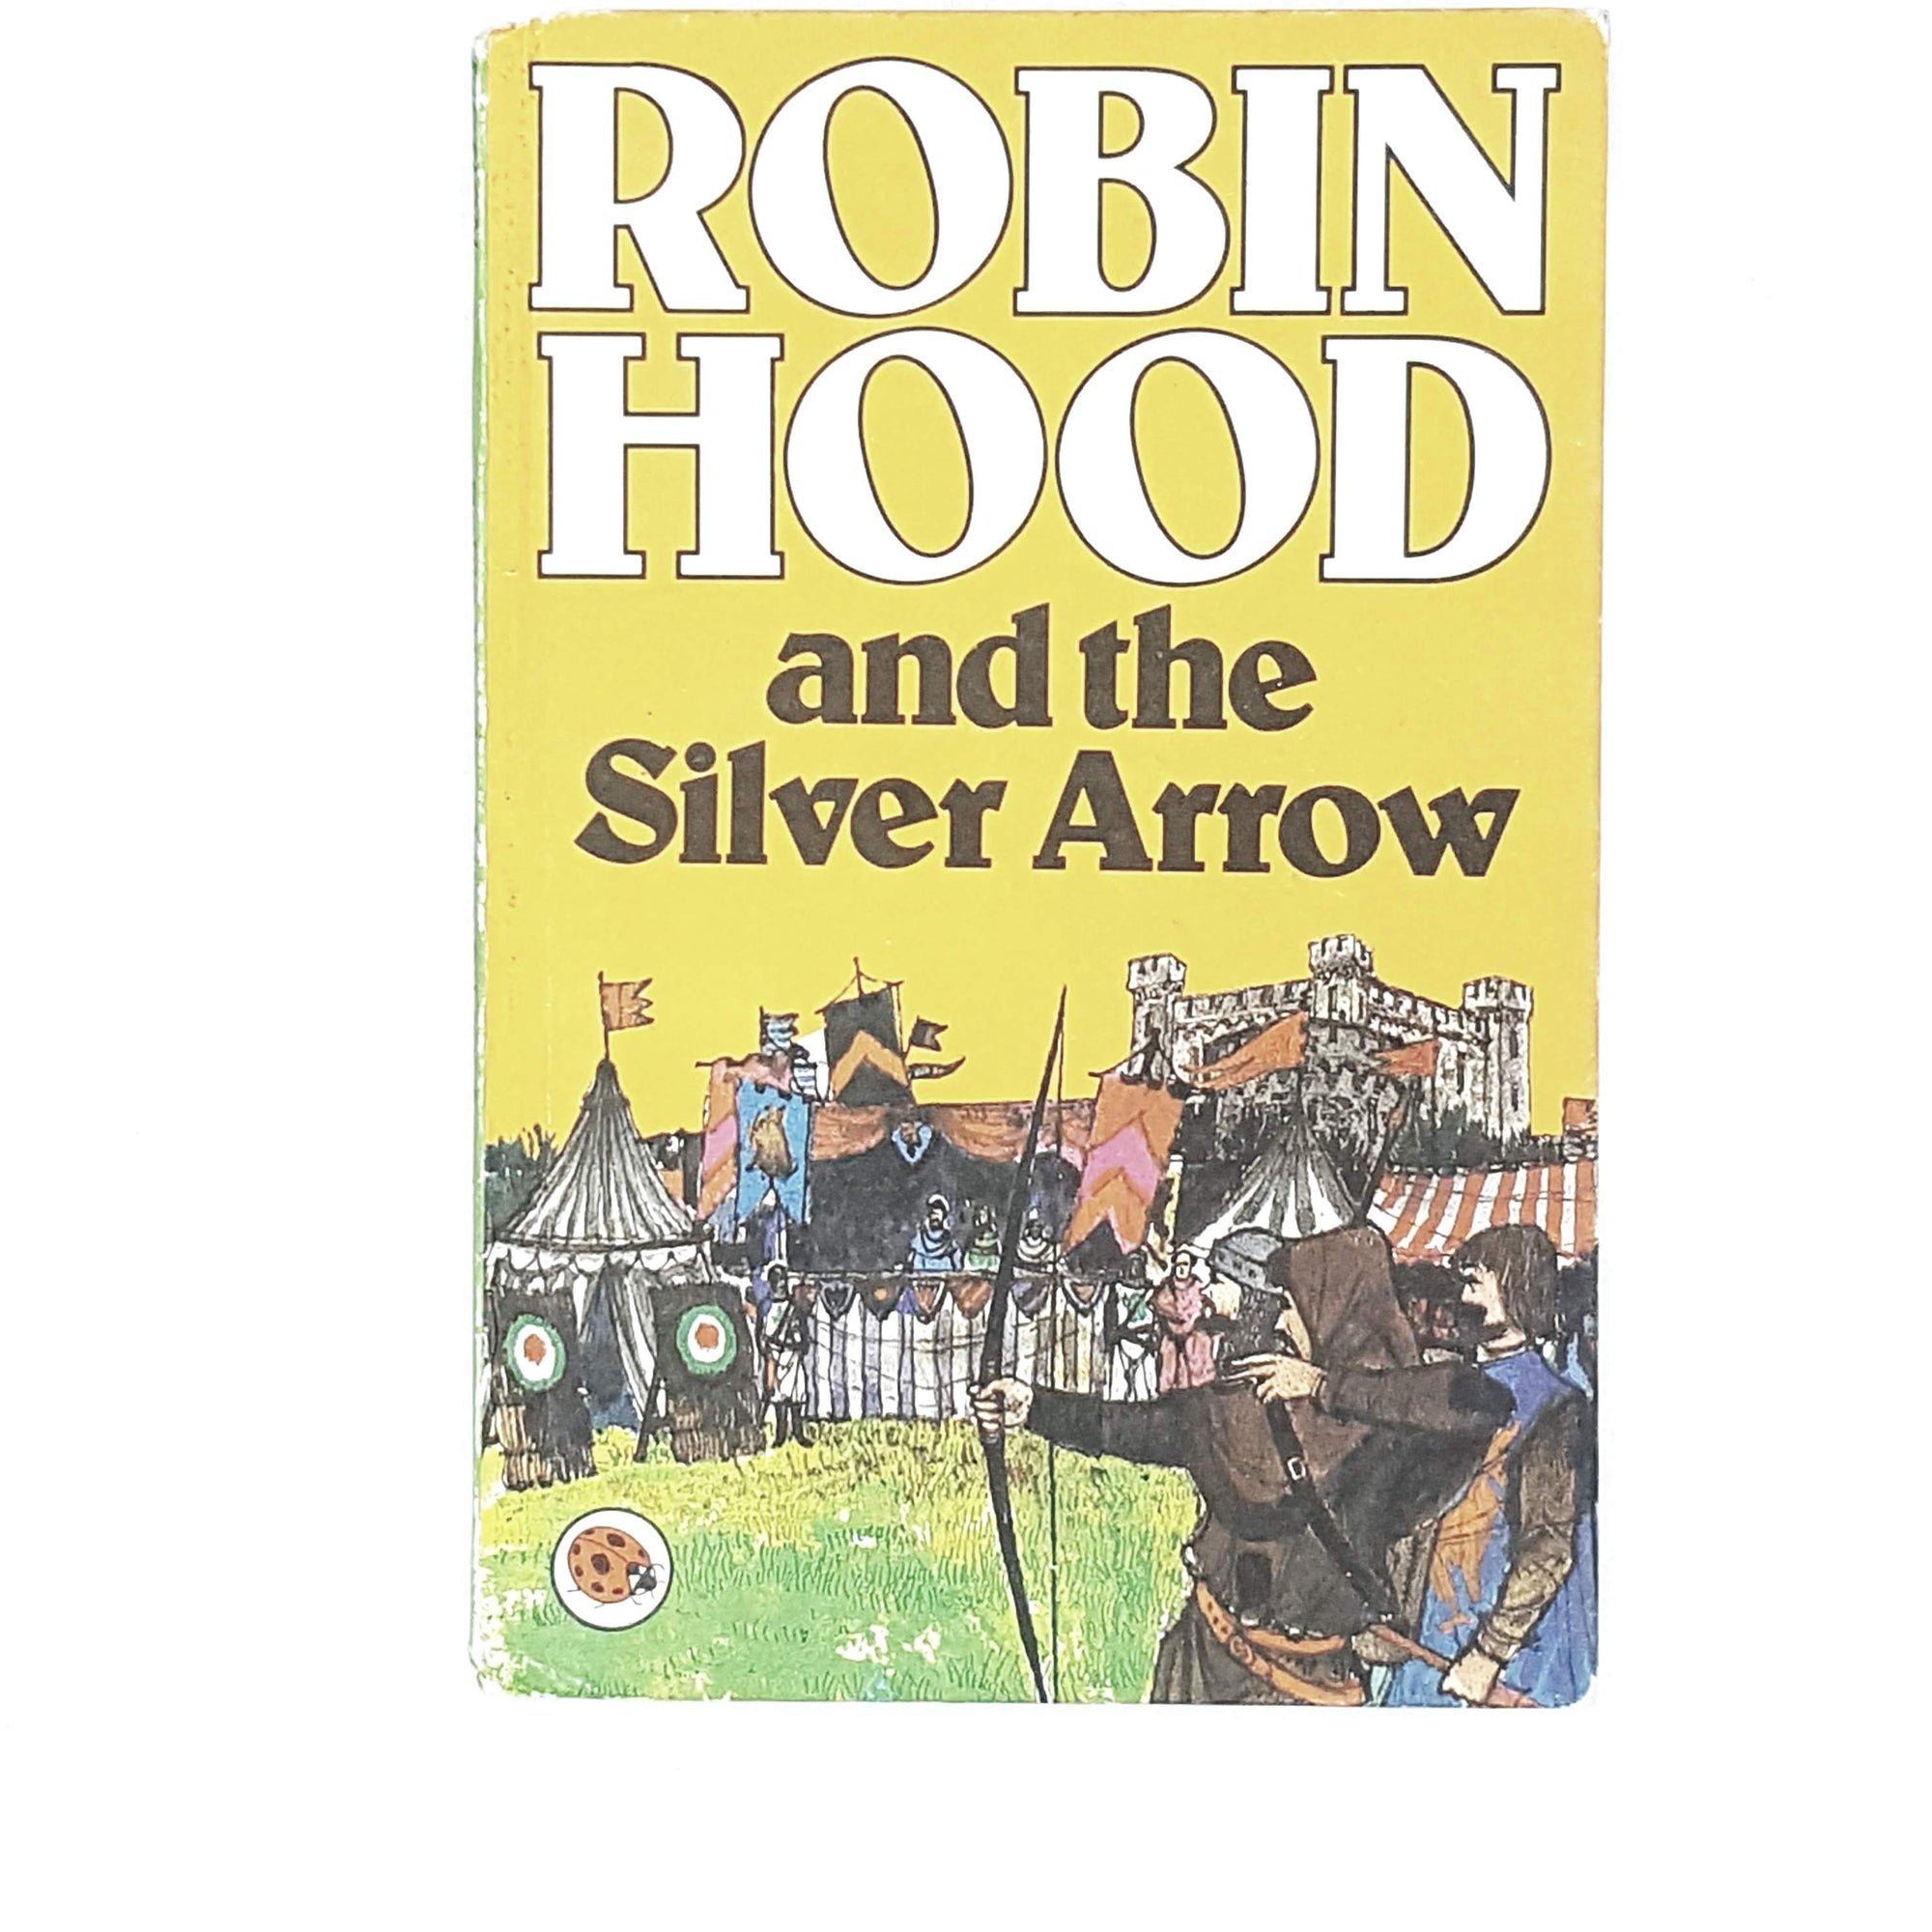 Vintage Ladybird Fiction: Robin Hood and the Silver Arrow